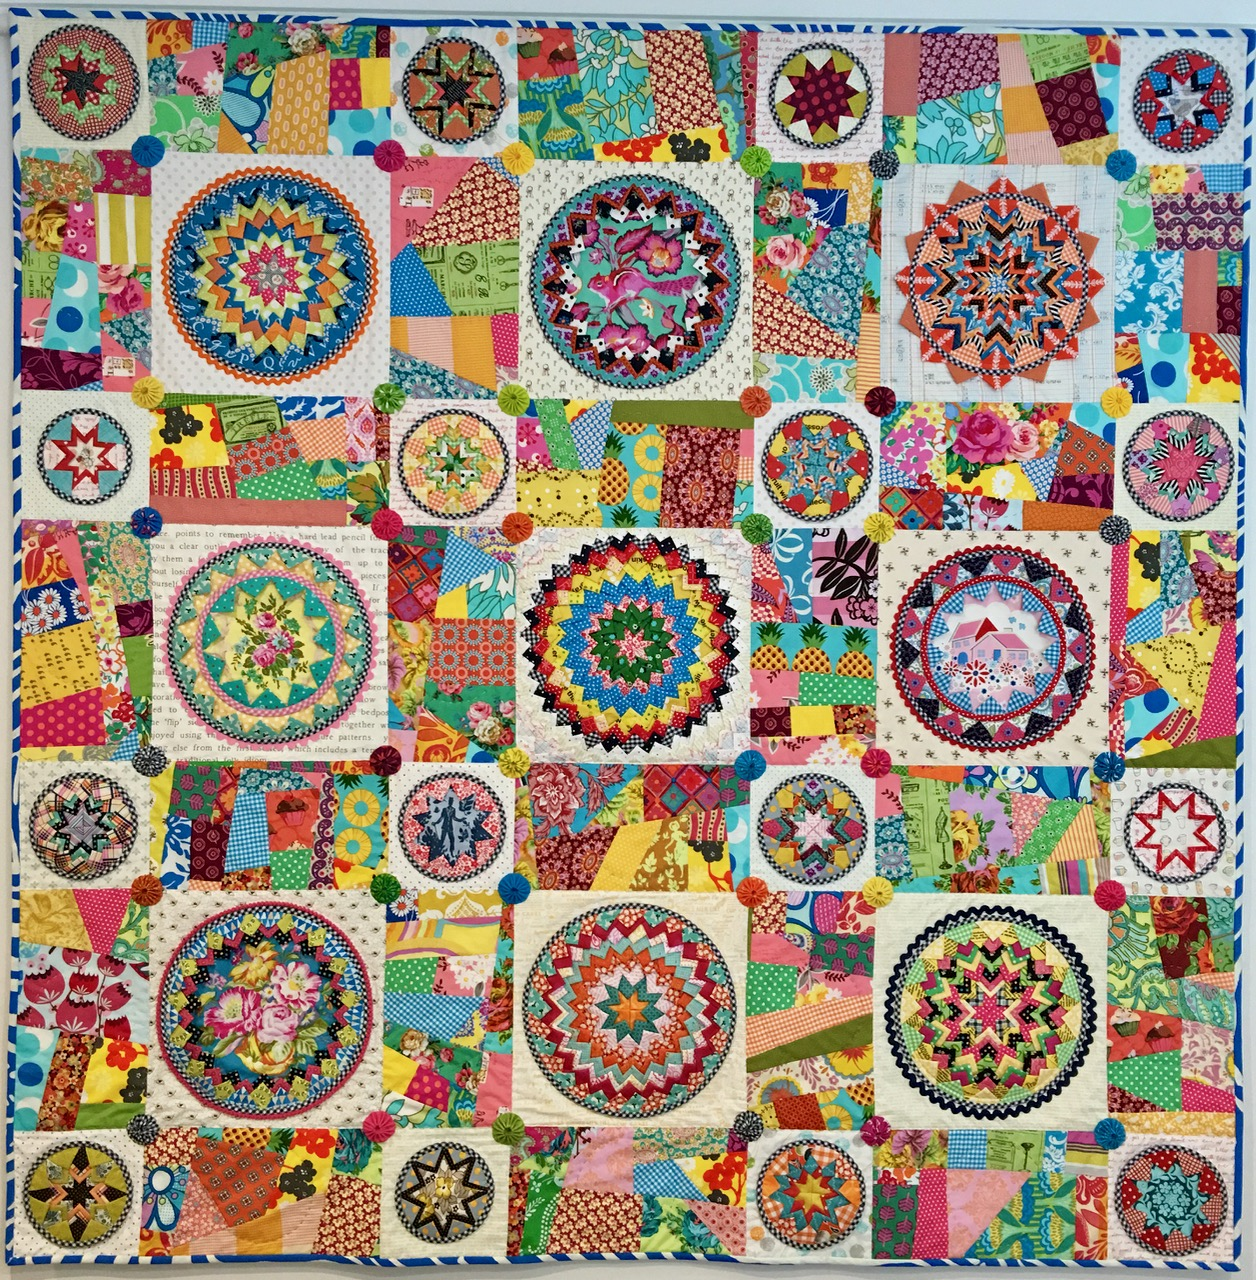 Amazing Quilts: My 2017 Sydney Show Quilts